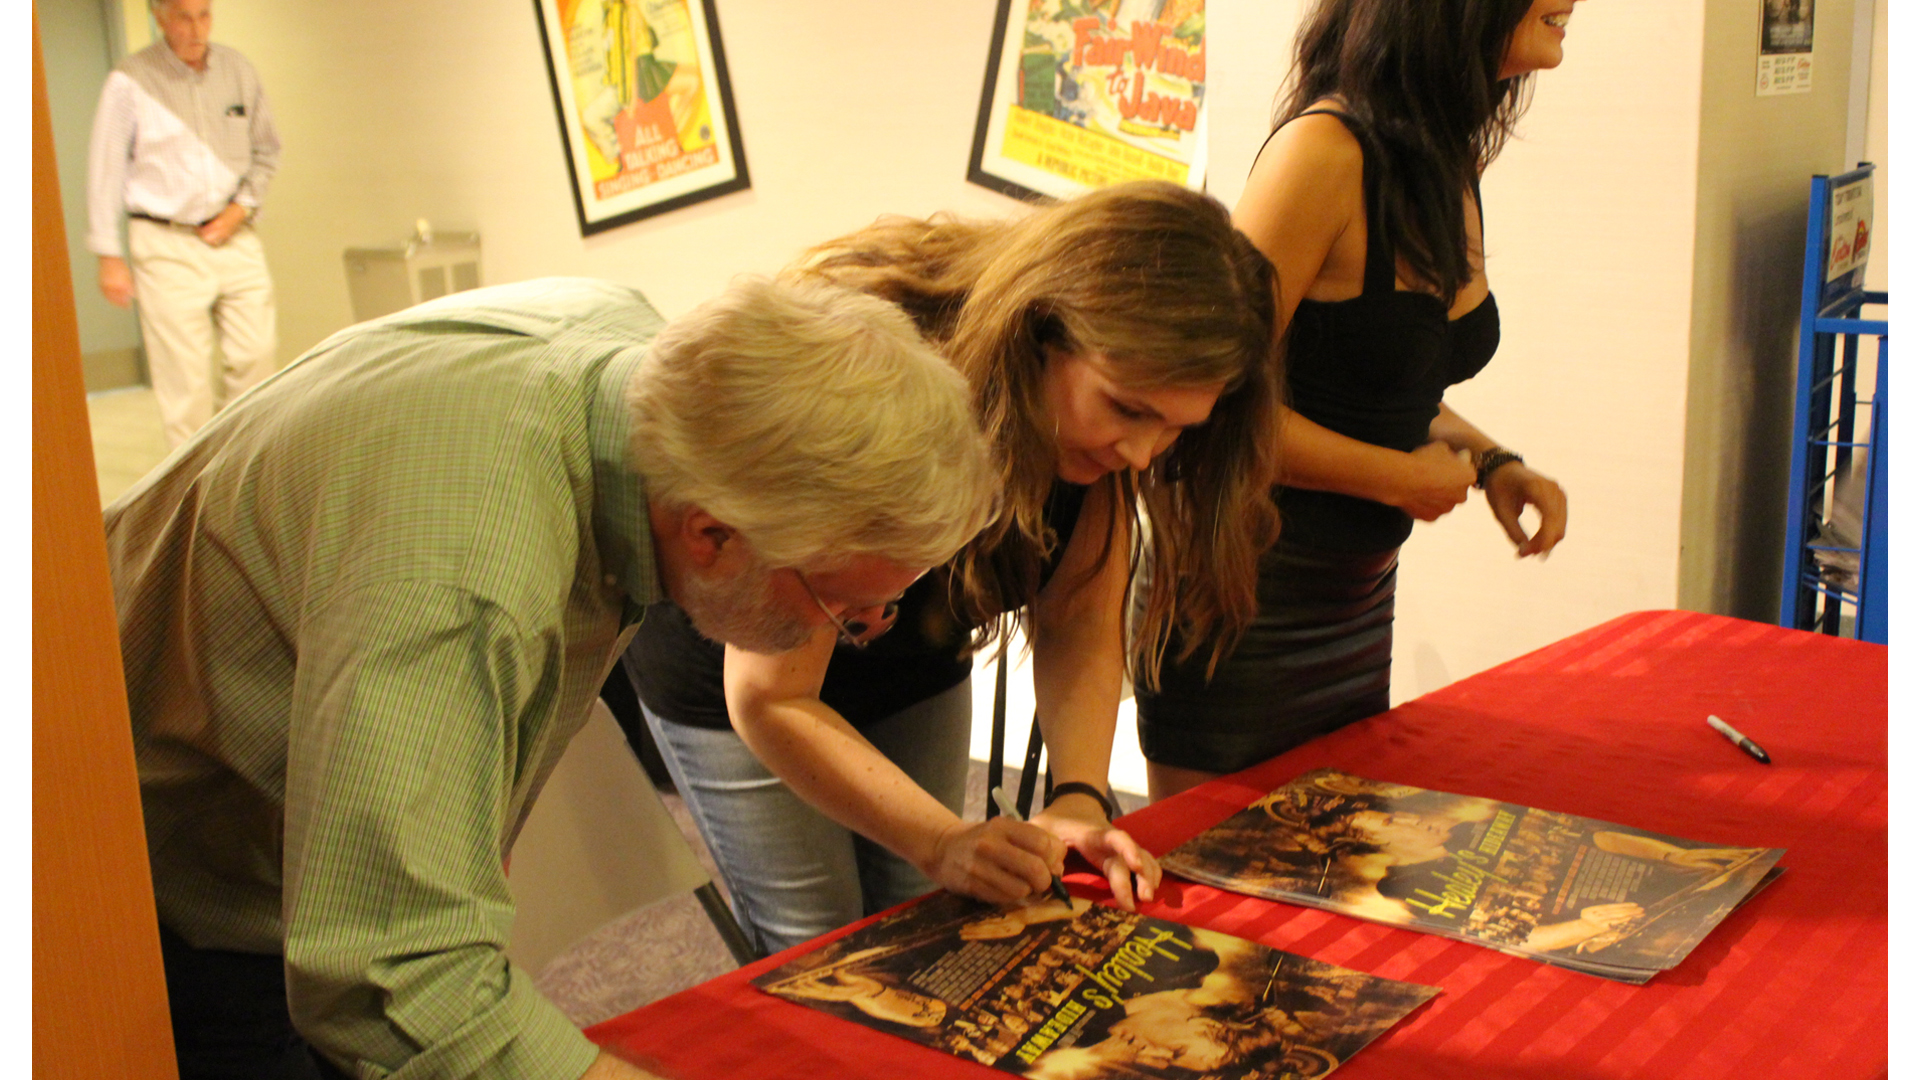 Cristie Healey and Colin Bray signing posters after the screening ofHealey's Hideaway.